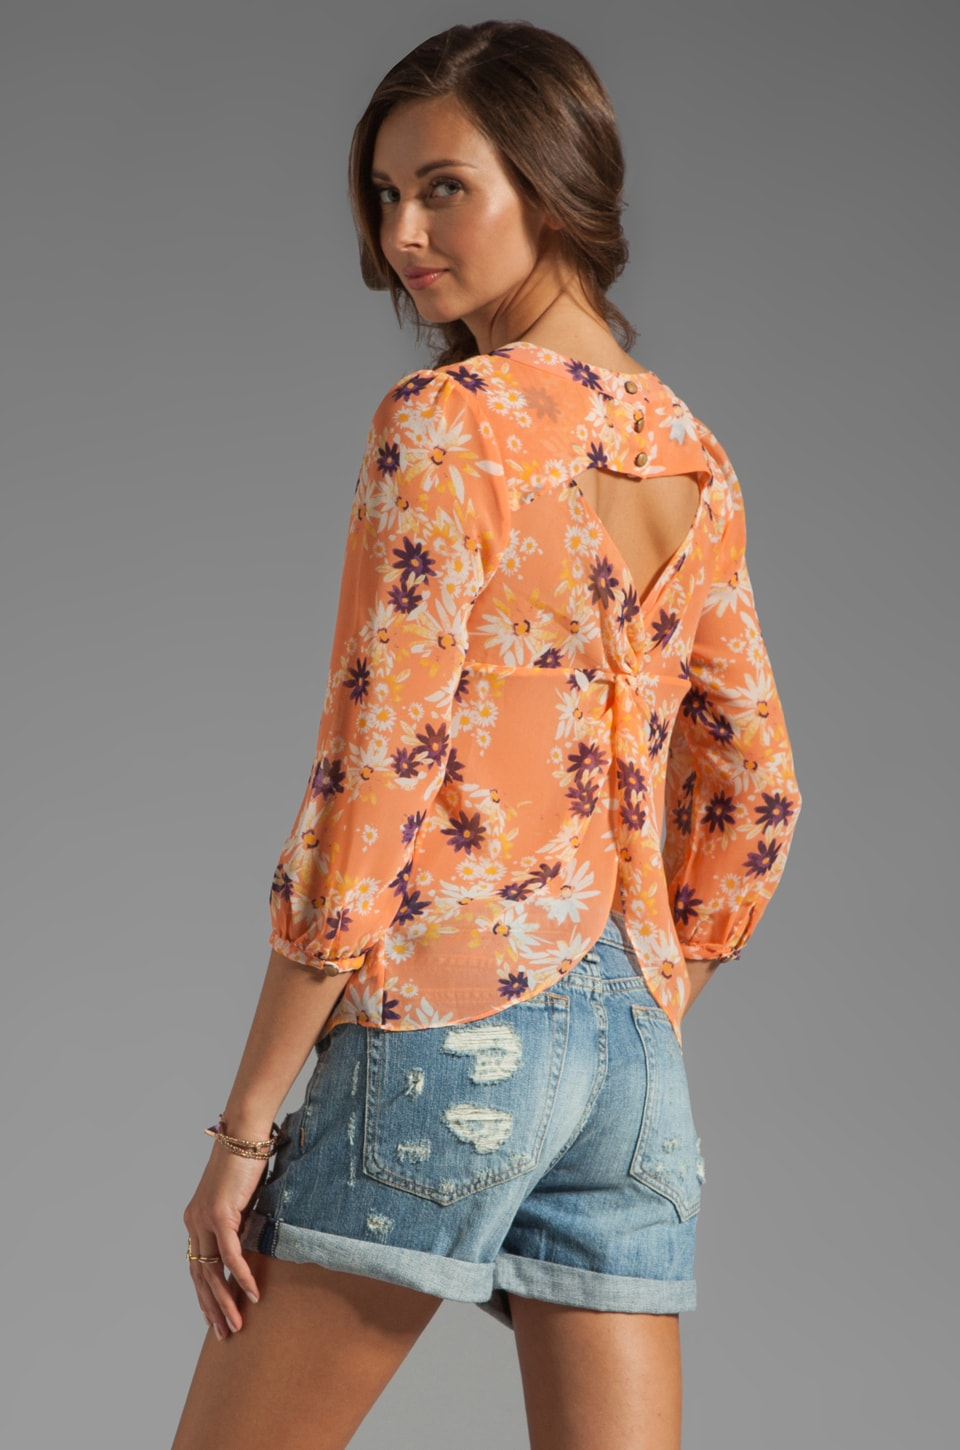 Dolce Vita Aema Lazy Daisy Blouse in Coral